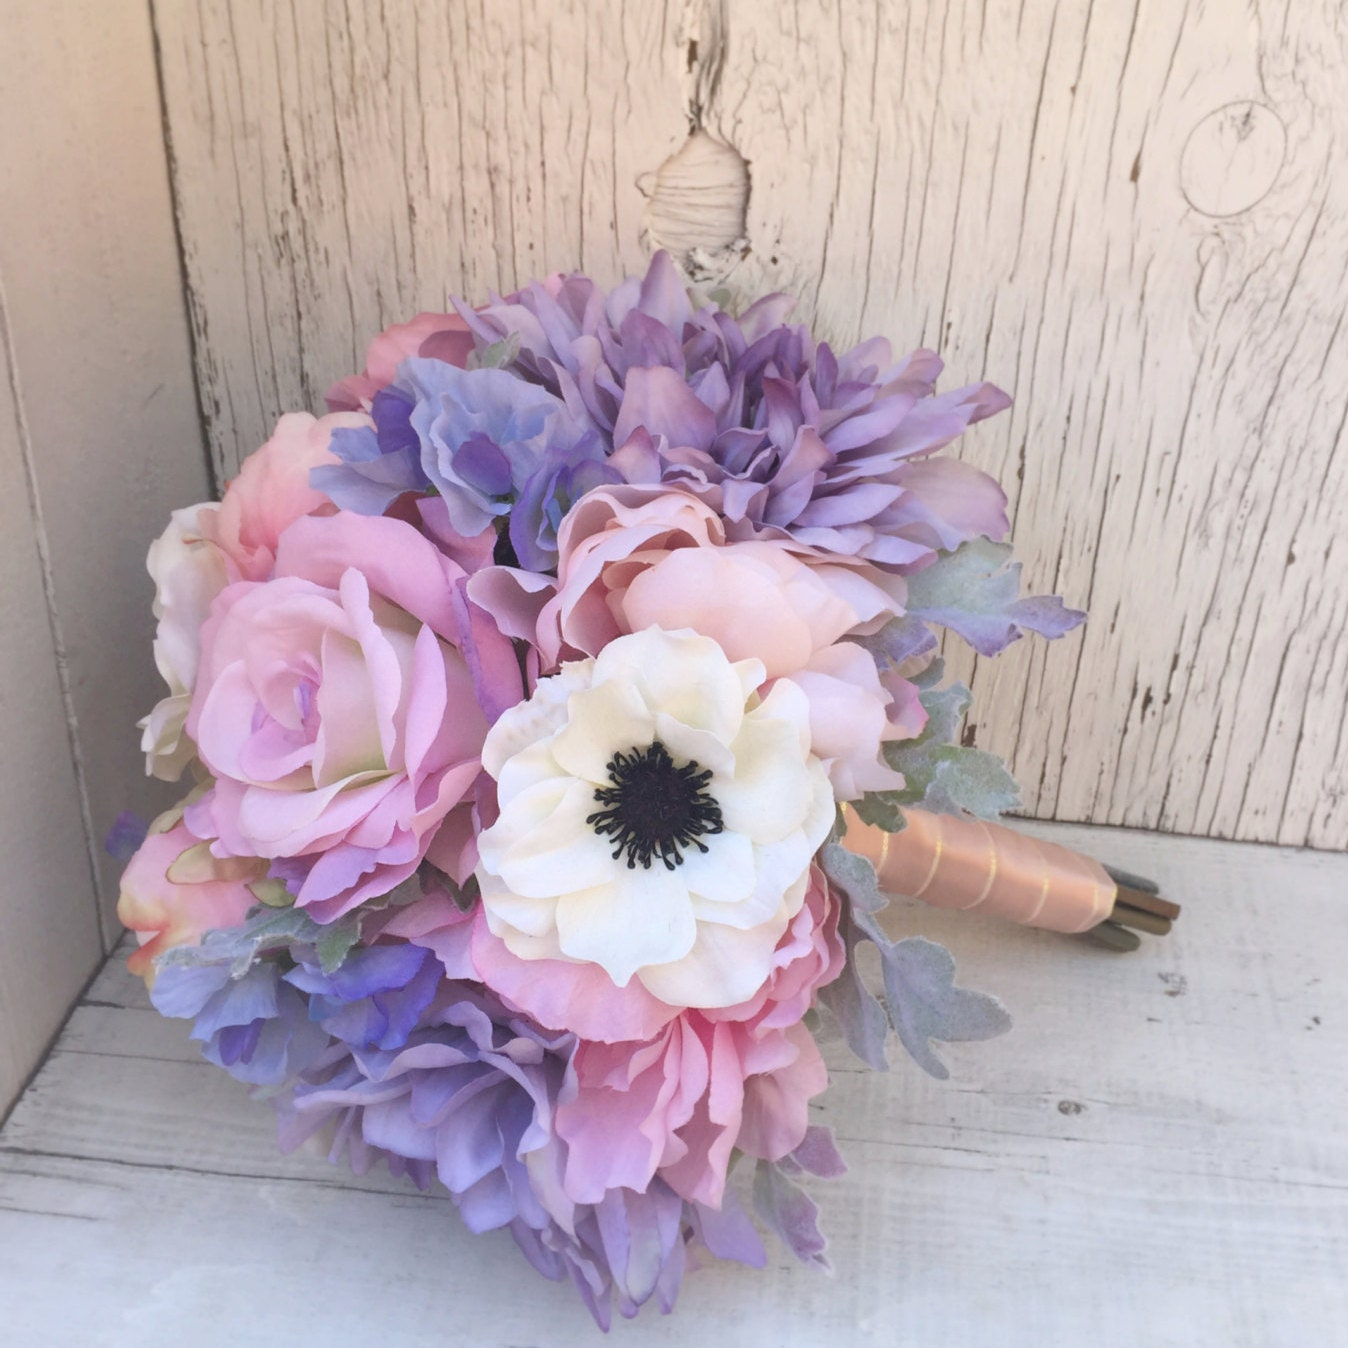 Pastel Wedding Flowers: Pastel Silk Wedding Bouquet With Anemones Peonies Roses